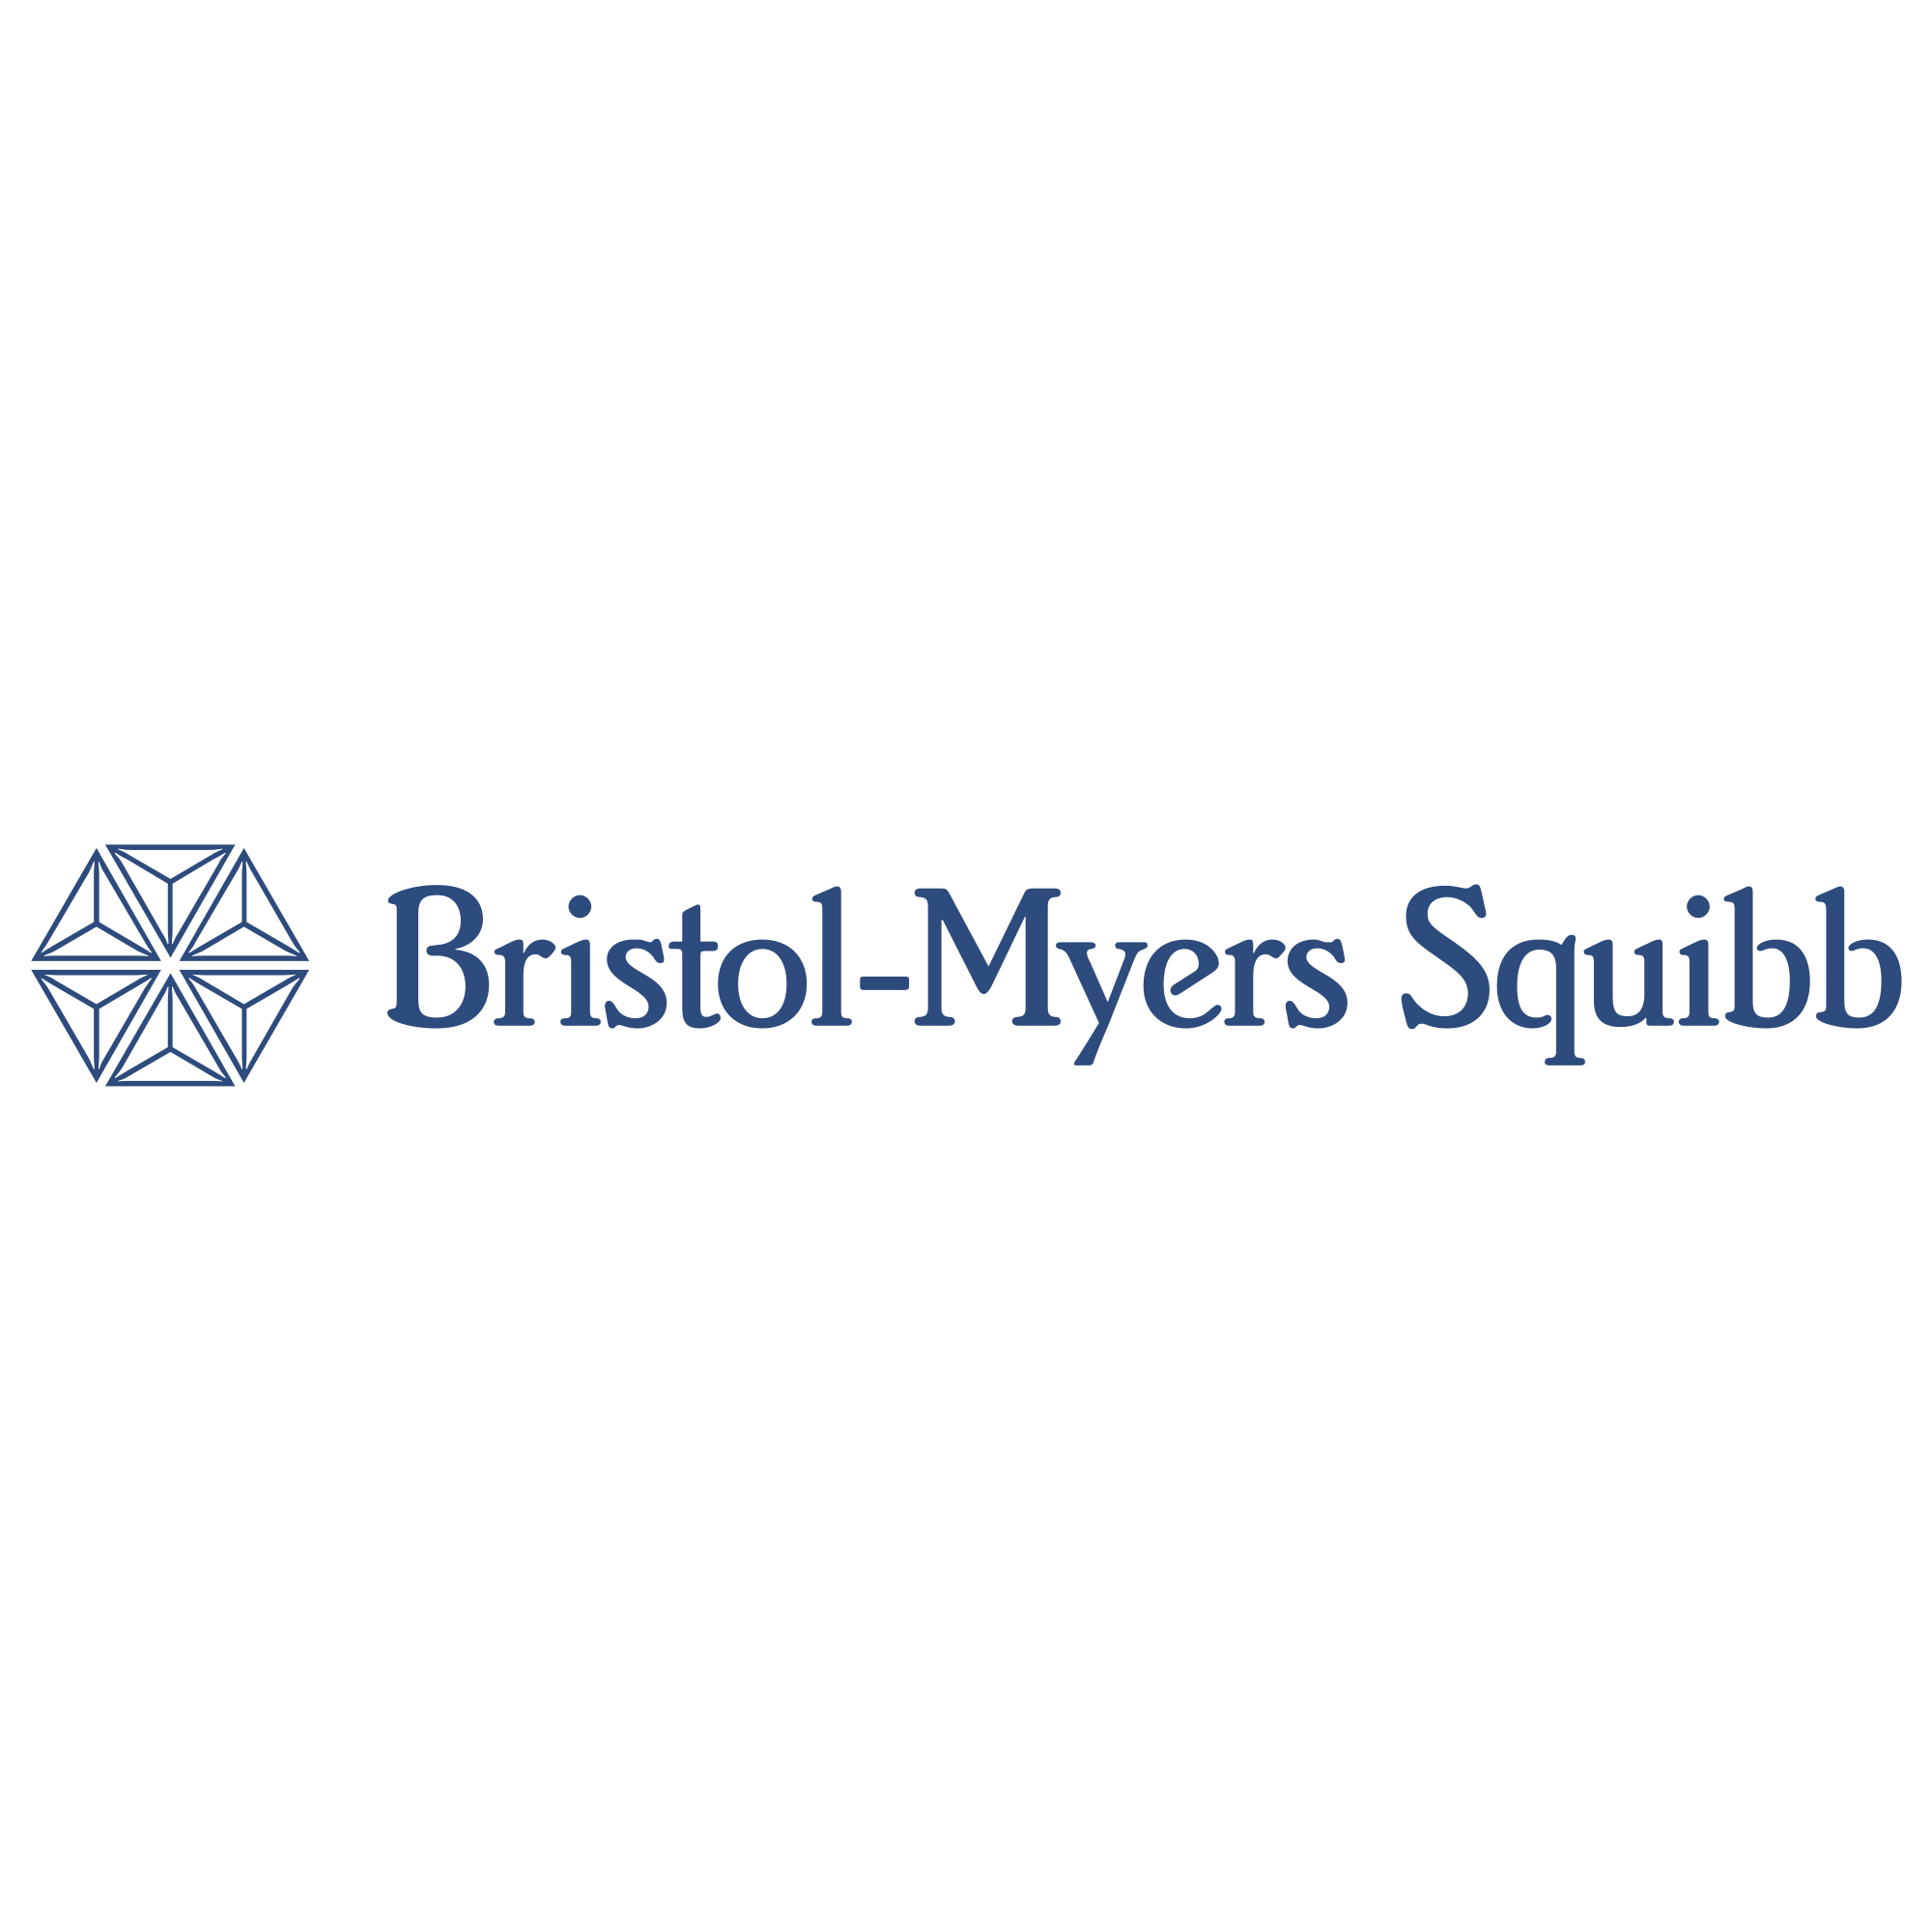 Bristol-Myers_Squibb_Logo square.png